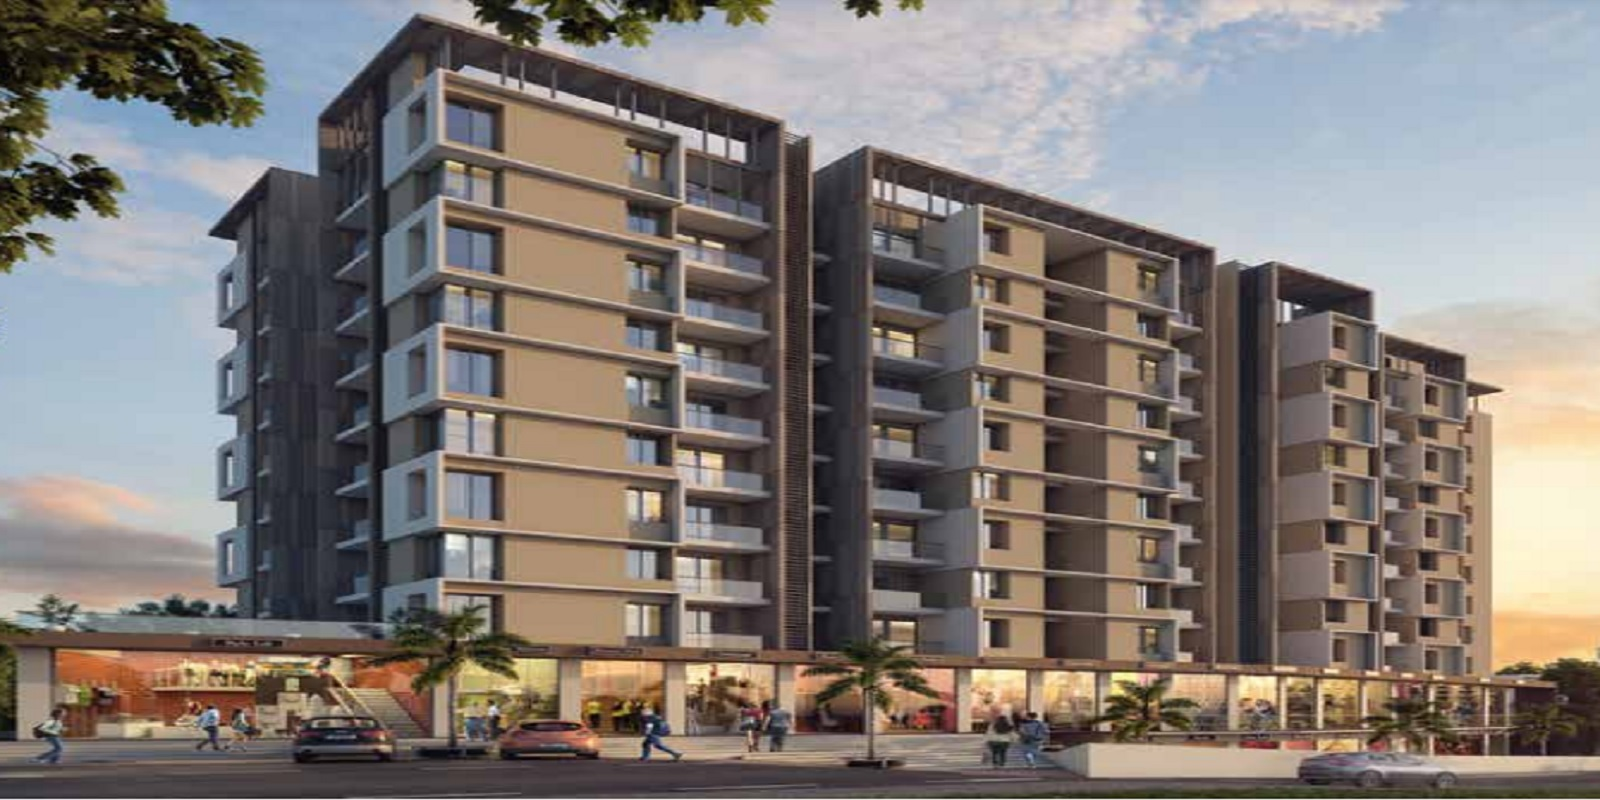 jd gaatha project project large image1